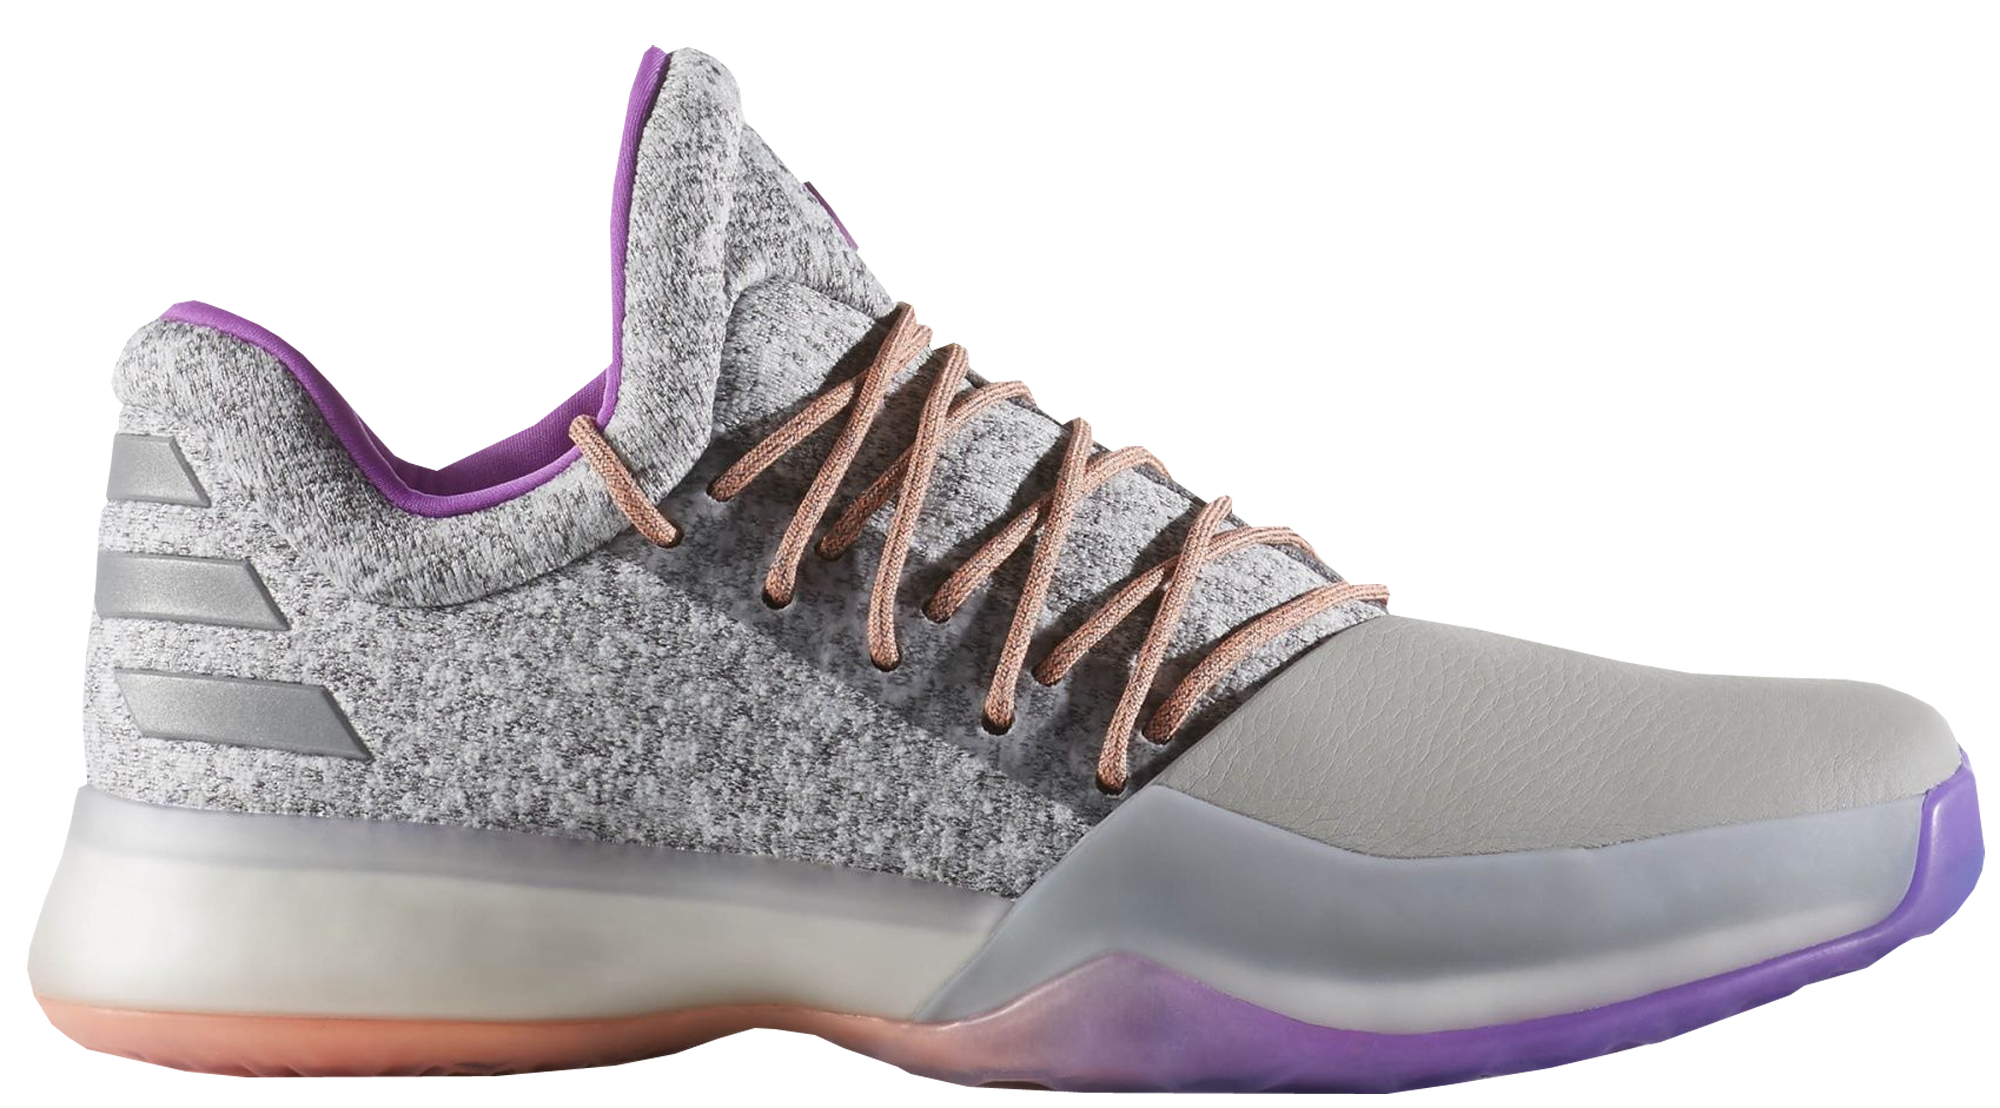 ce40000c0782 Adidas Harden Vol. 1 No Brakes - StockX News